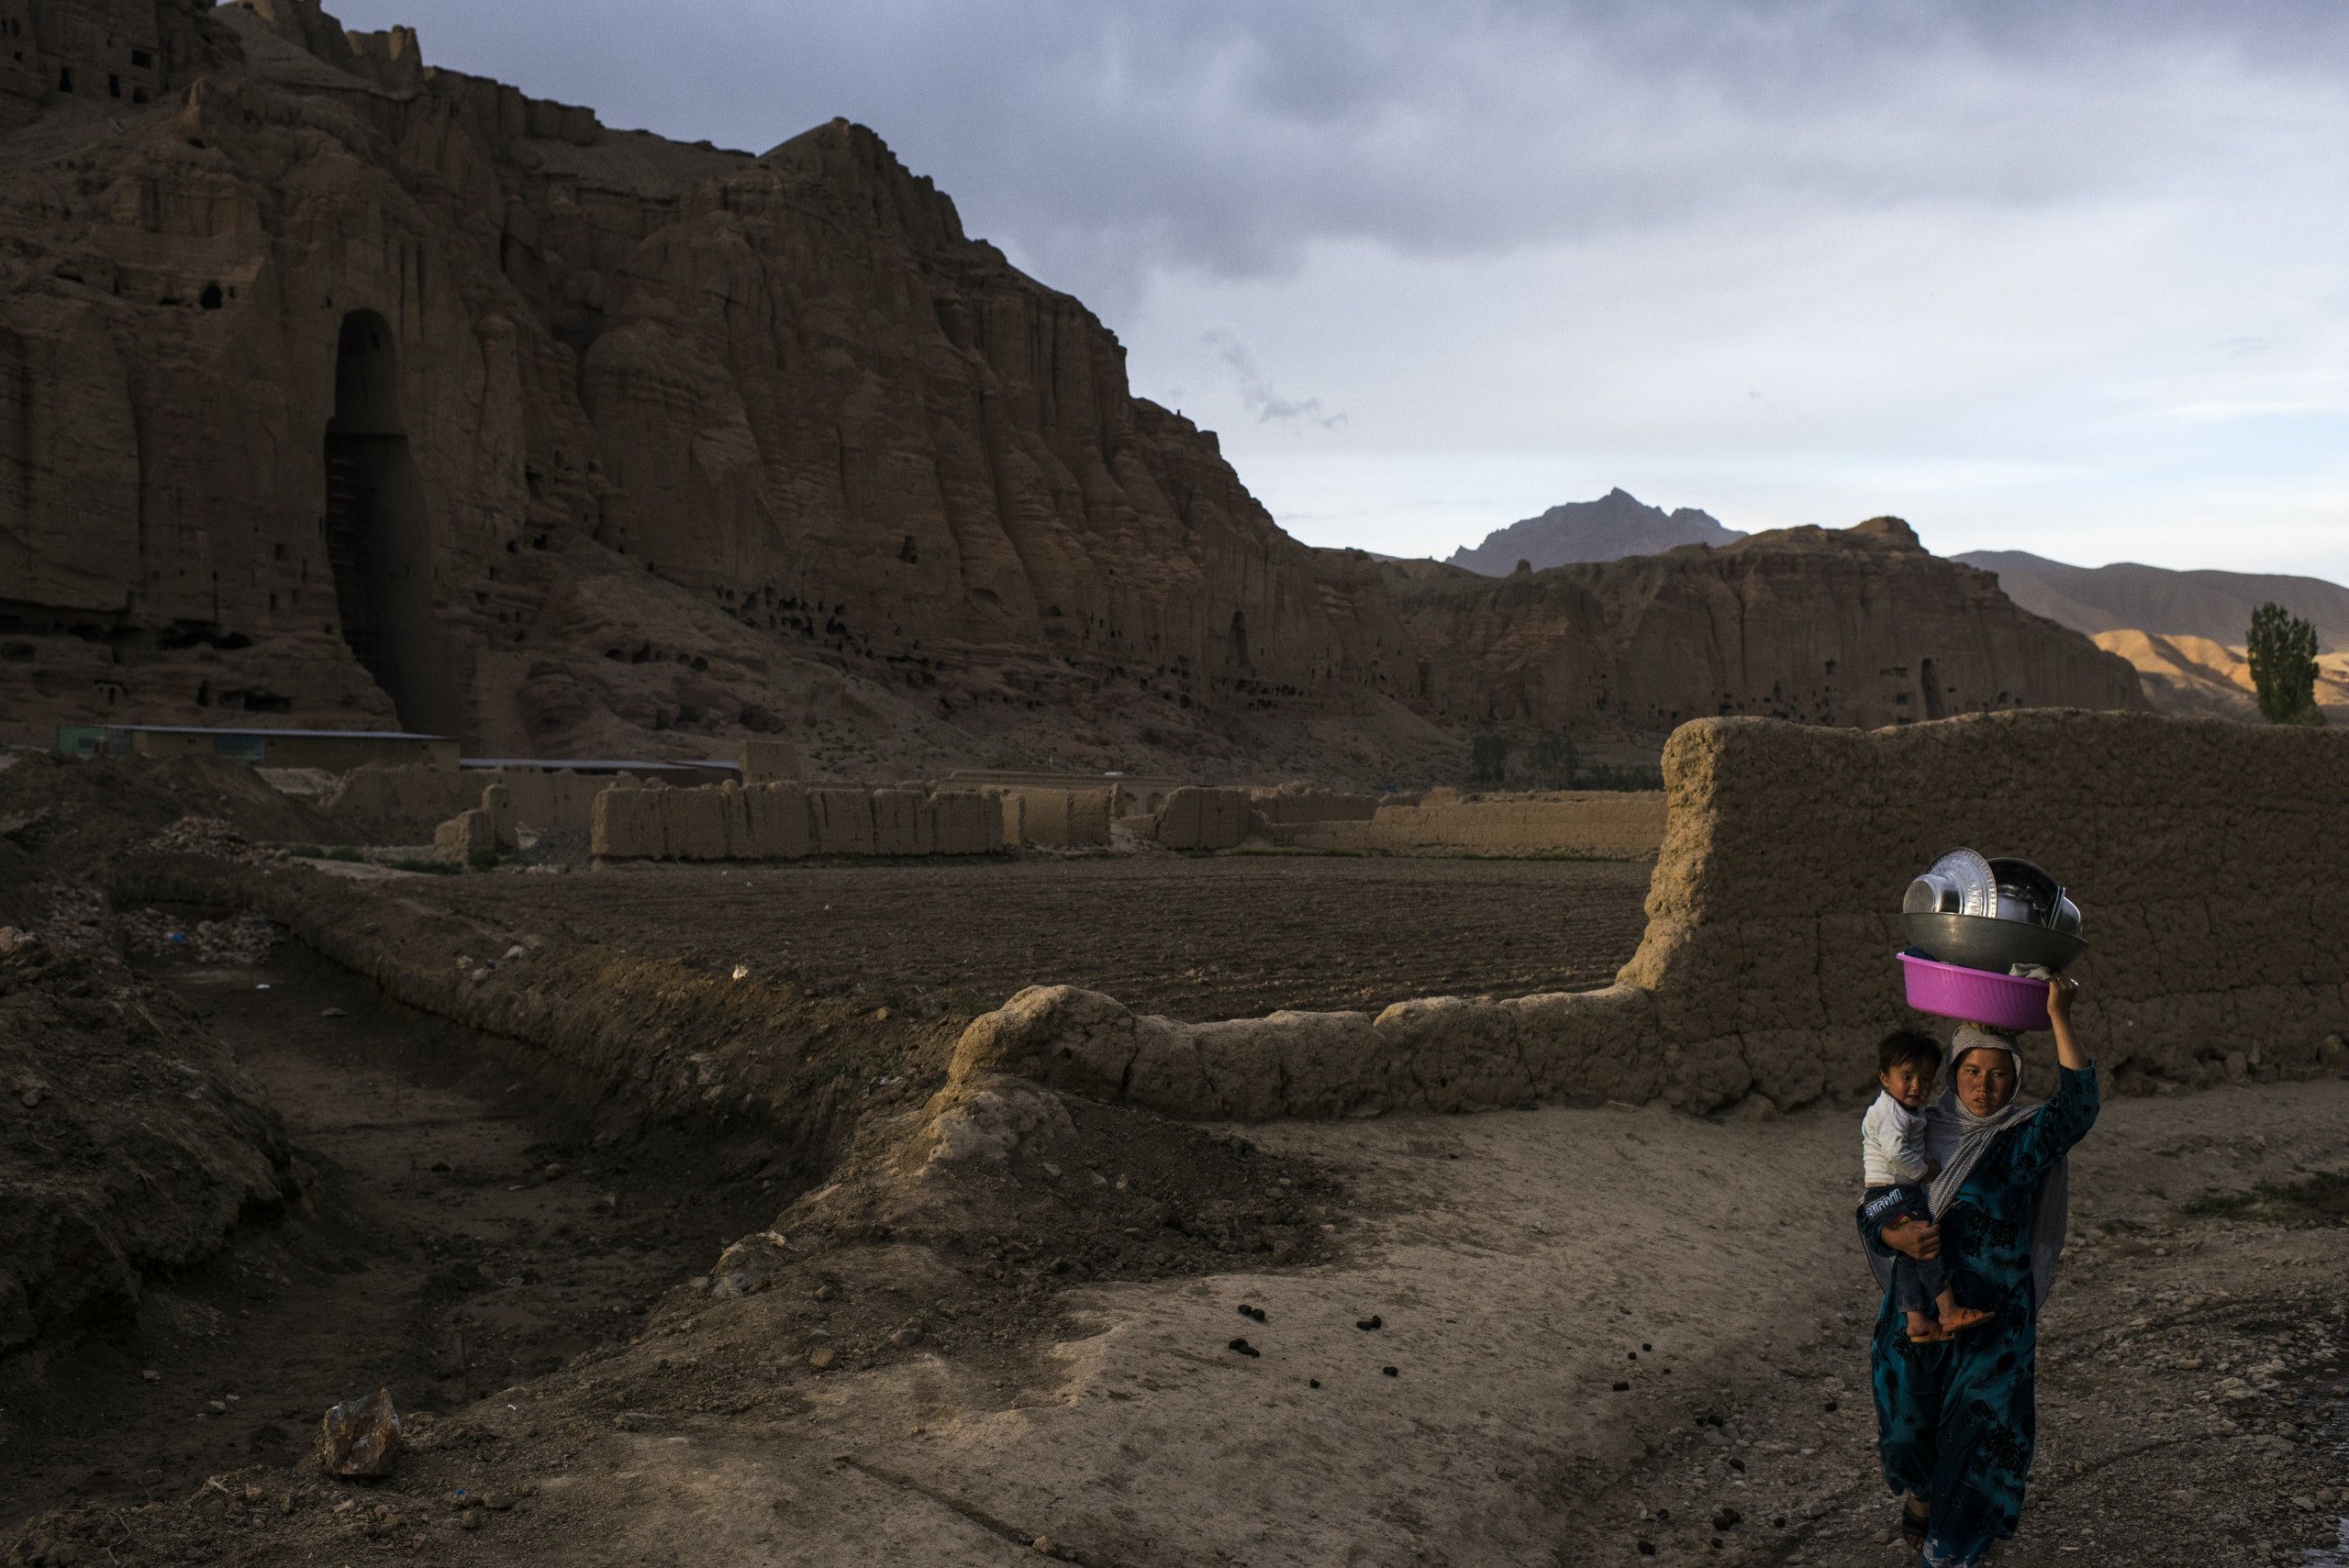 A woman carries a young child and crockery toward their nearby village after washing the utensils in a water spring near one of the famous, ancient Buddha niches carved out of the rock face looking over  Bamiyan City, the capital of central Afghanistan's Bamiyan province.